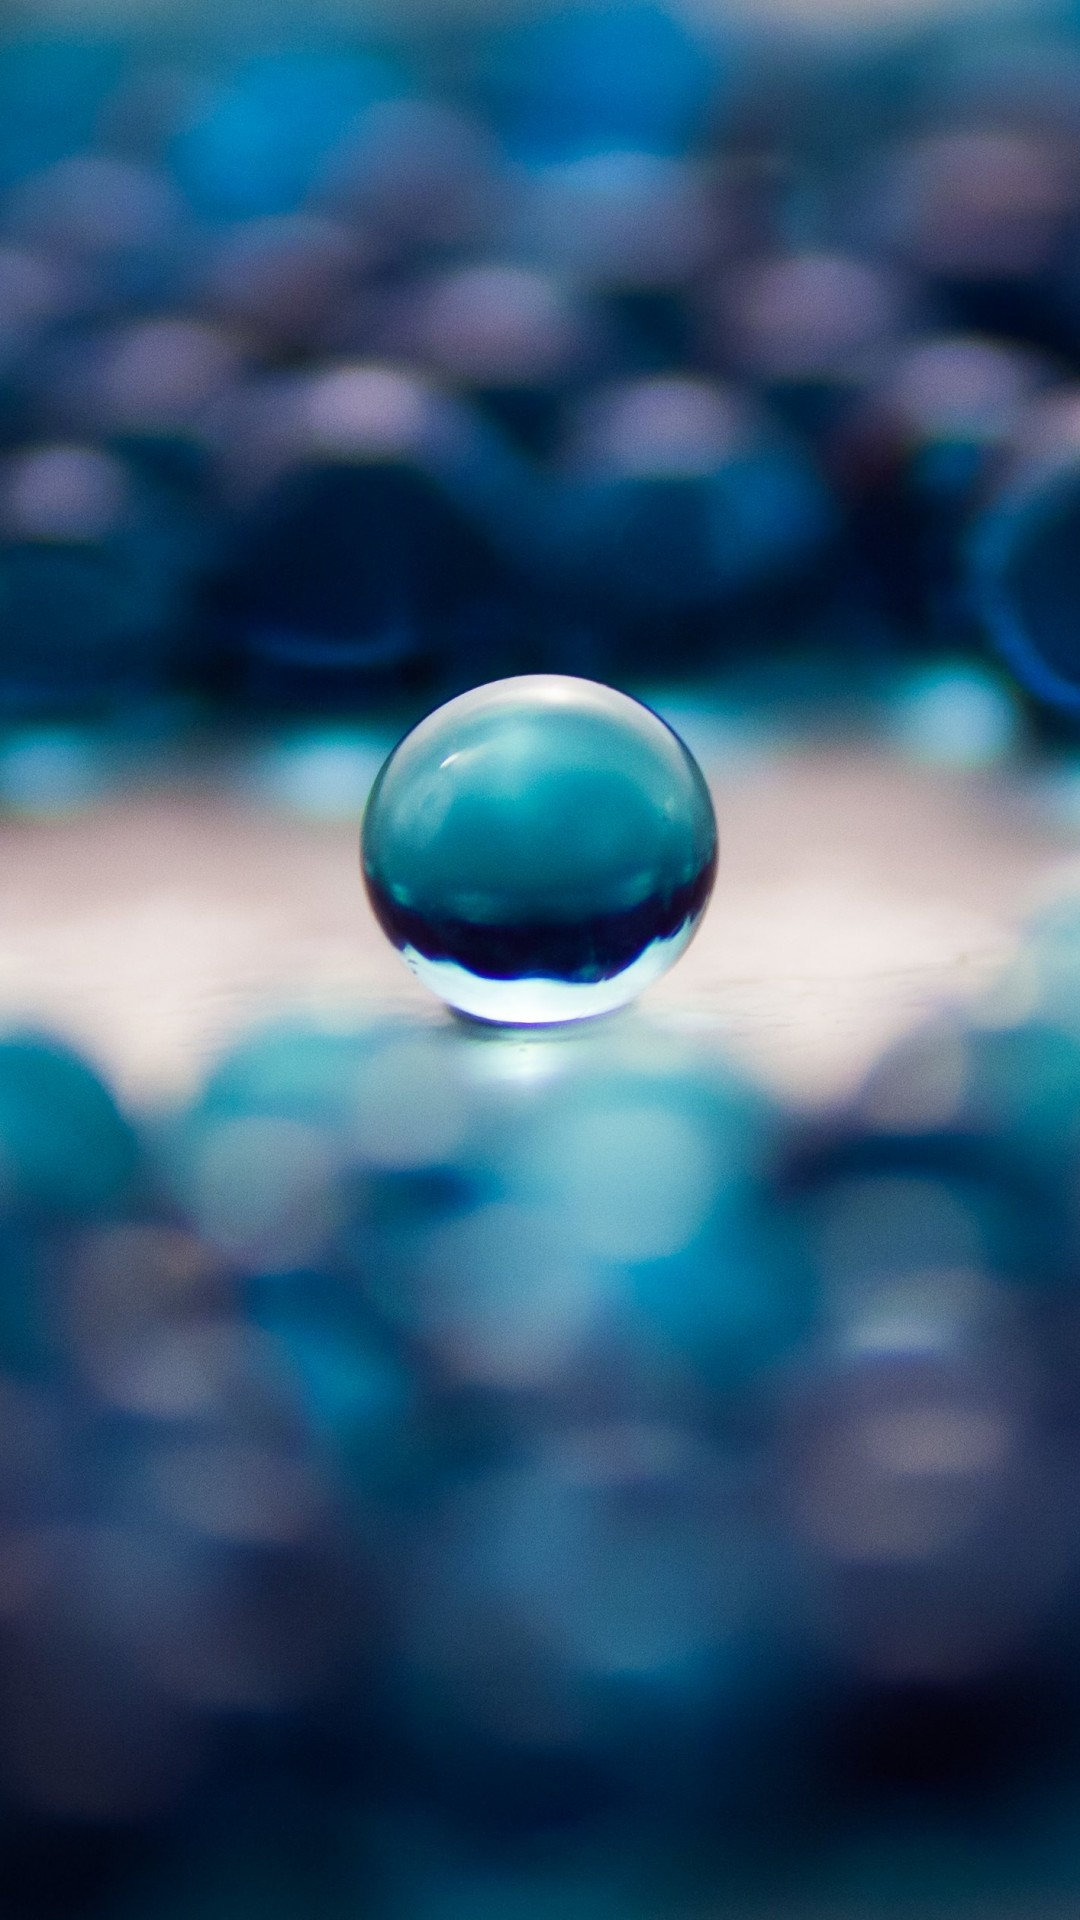 Water Balls Wallpaper for SONY Xperia Z2